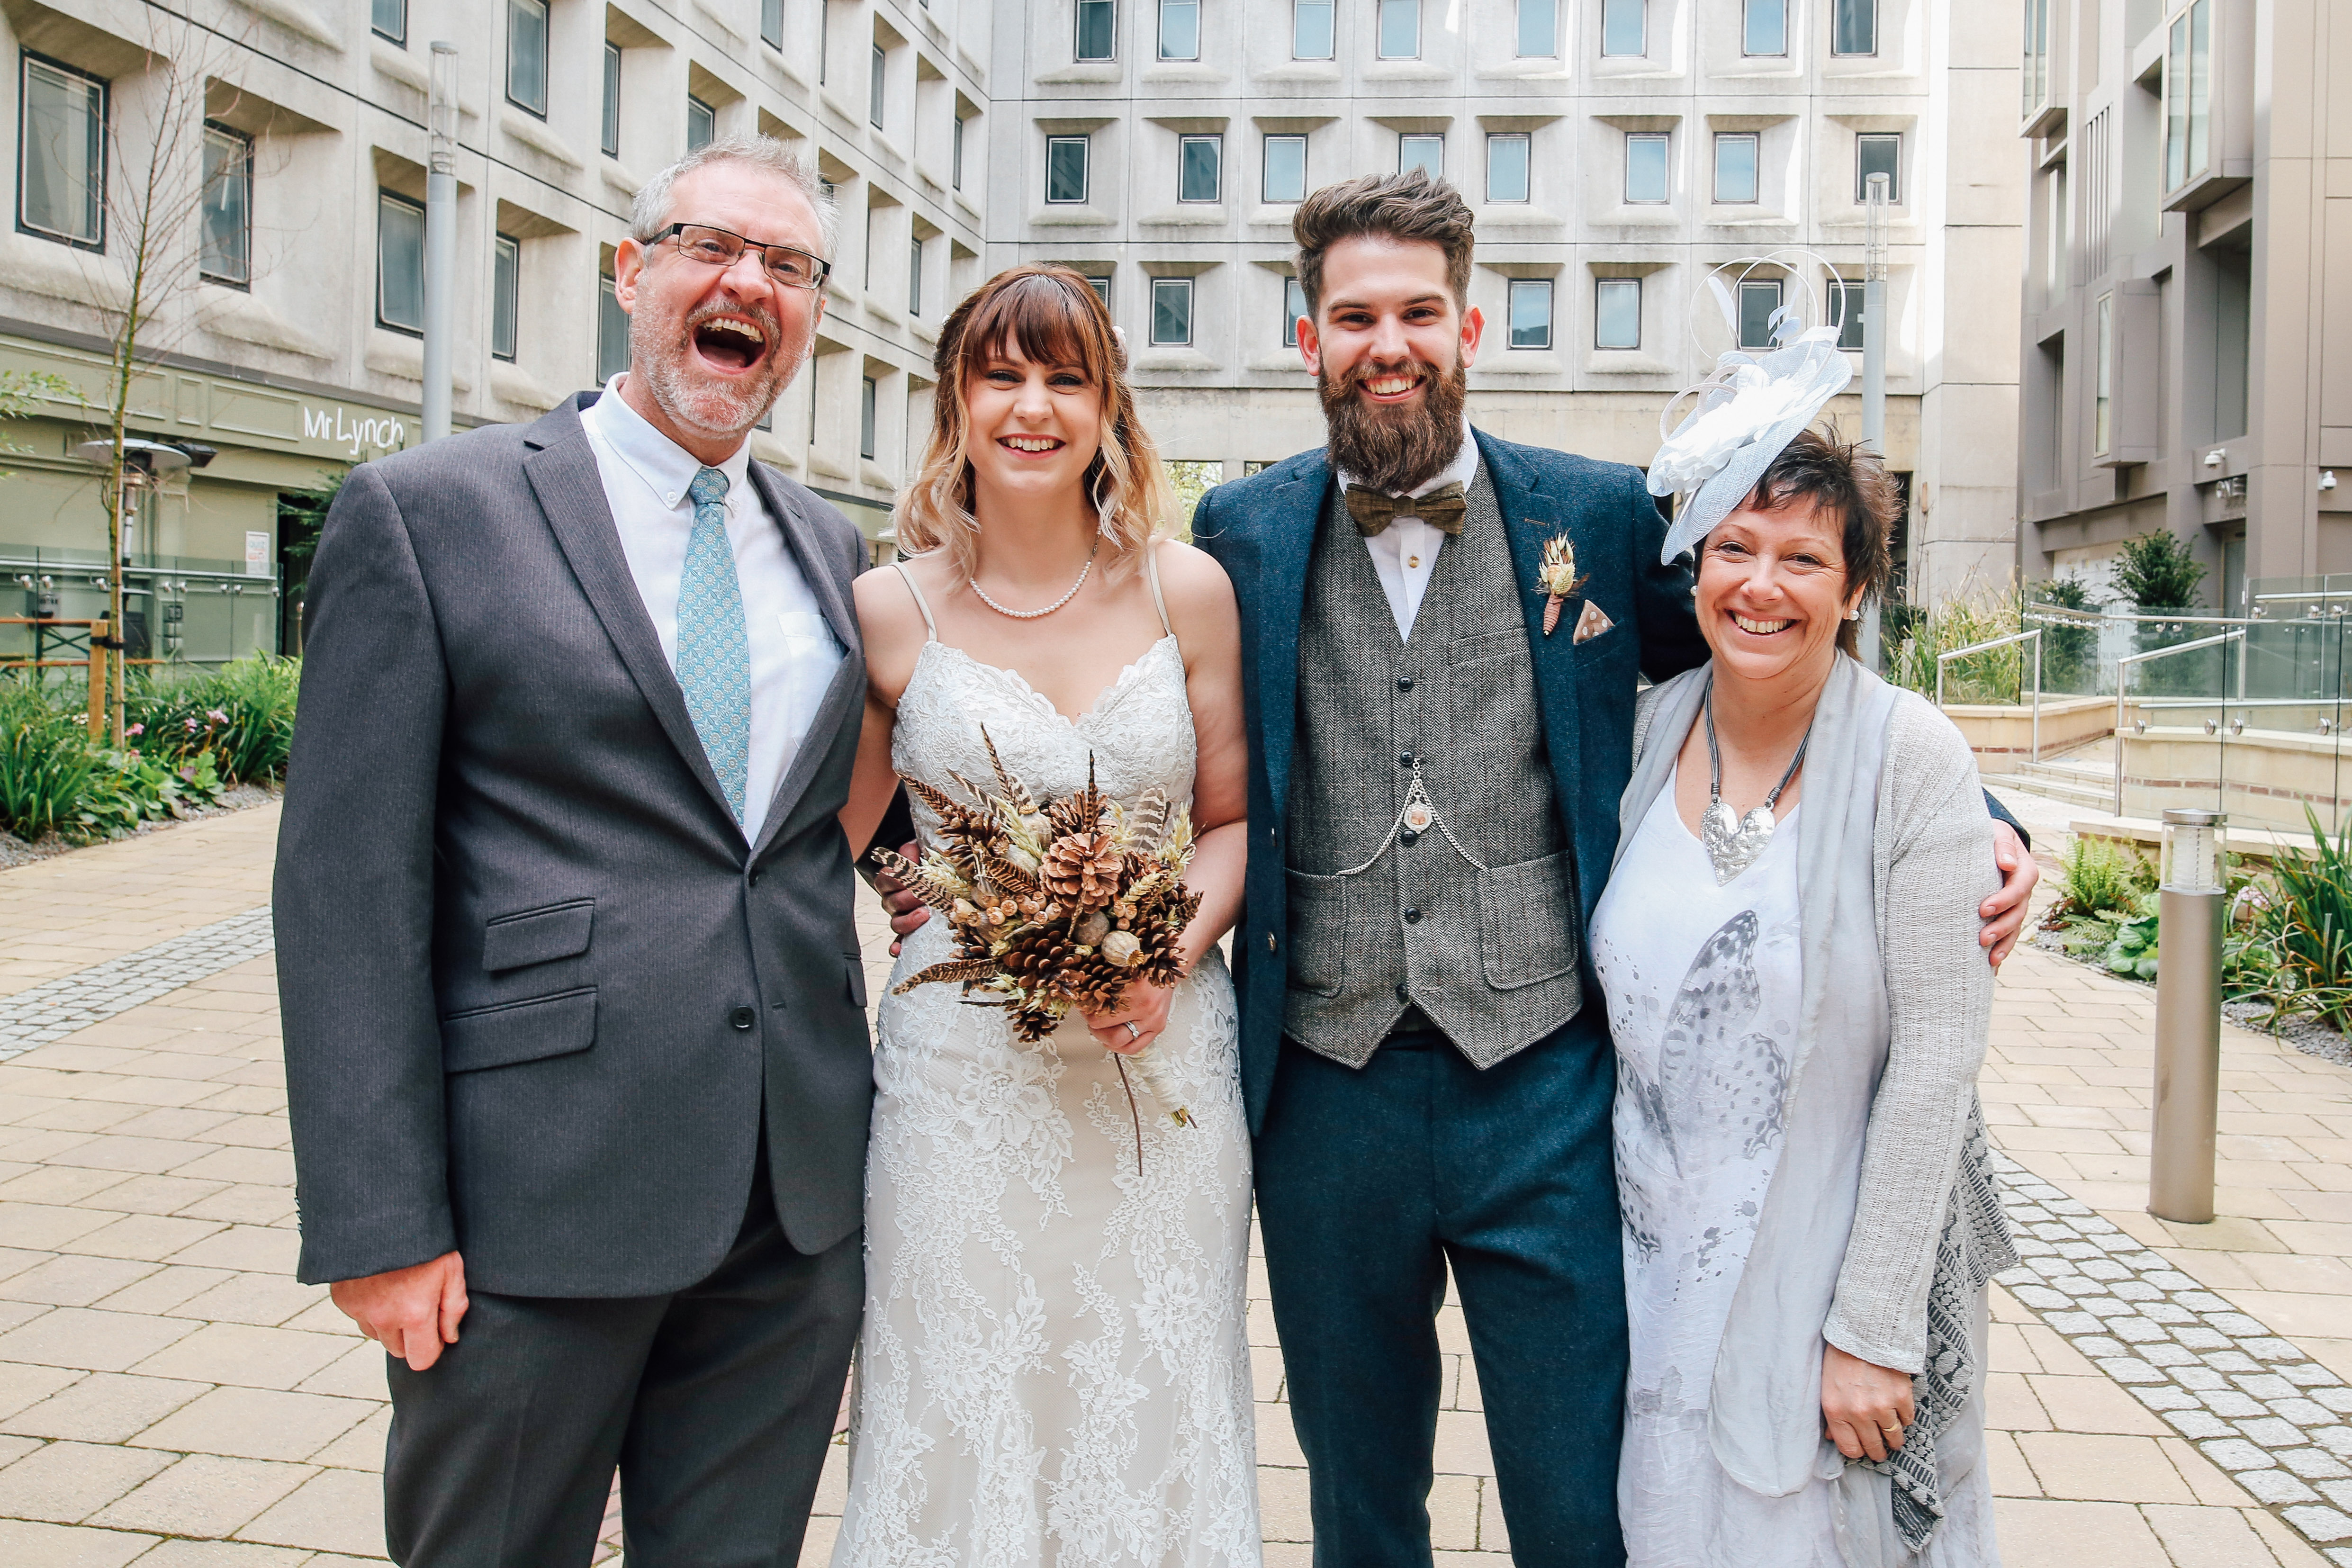 Manchester Wedding Photographer at As You Like It